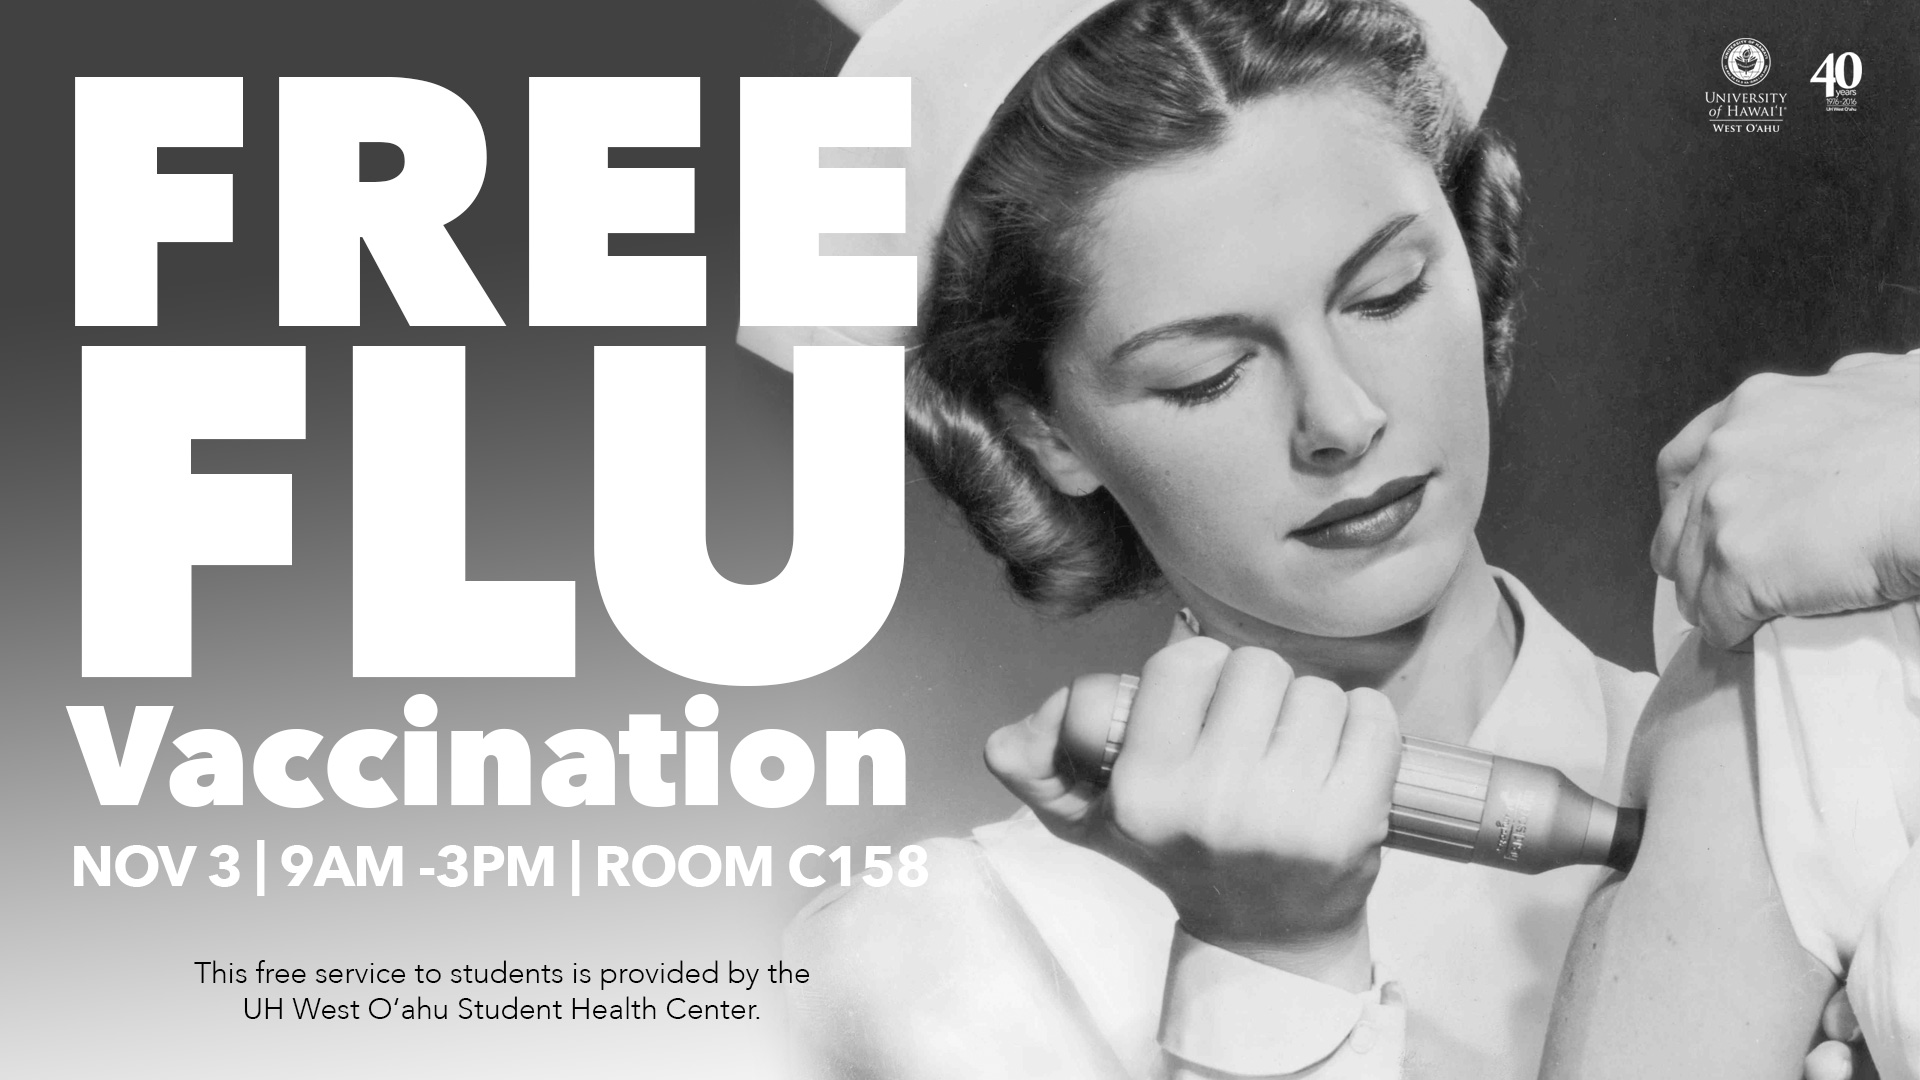 Free flu vaccinations on November 3